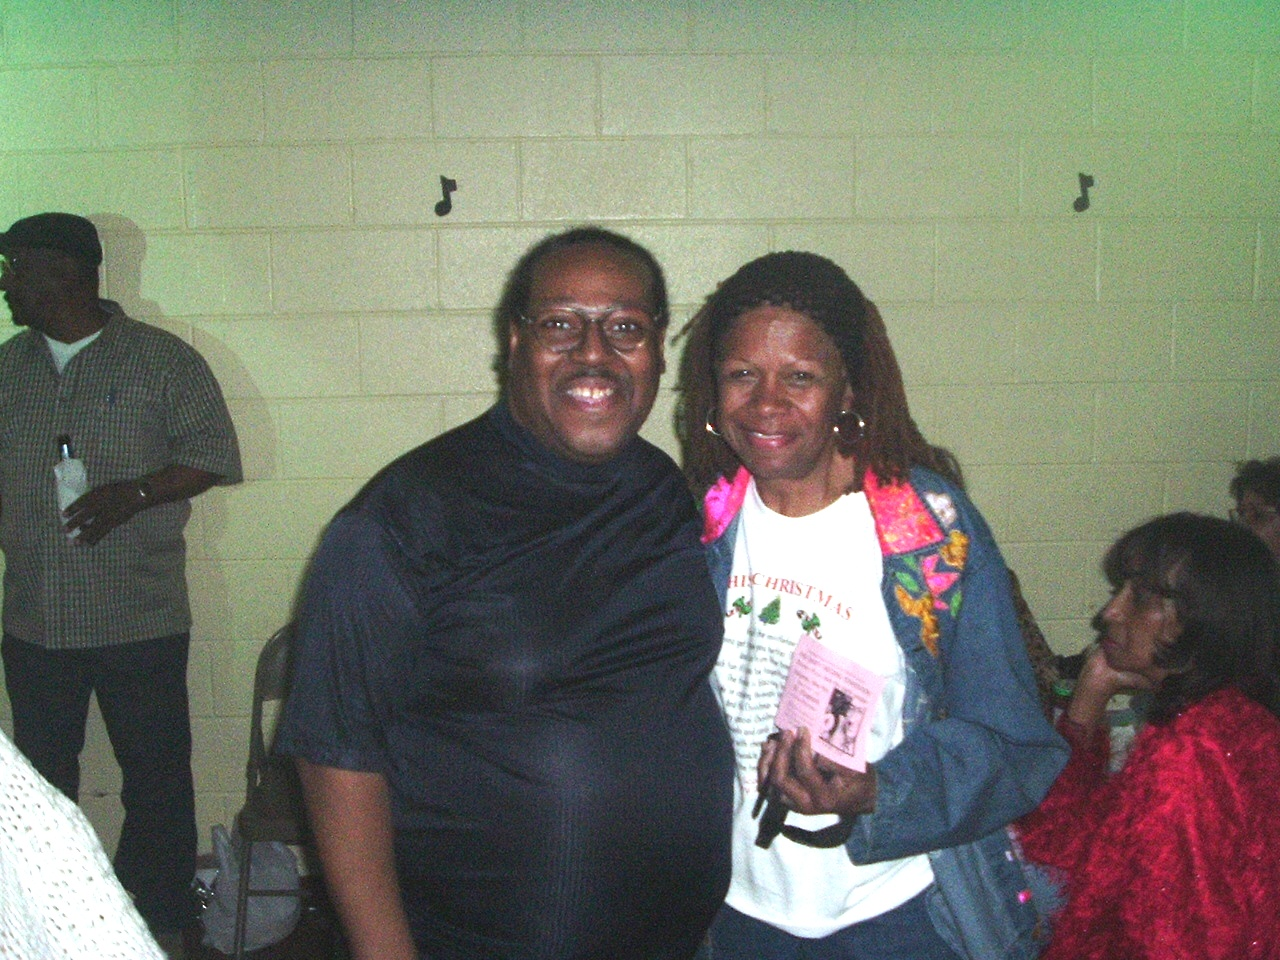 PJ WILLIS WITH NADINE McKINNER ( SHE CO-WROTE THIS CHRISTMAS WITH DONNY HATHAWAY )